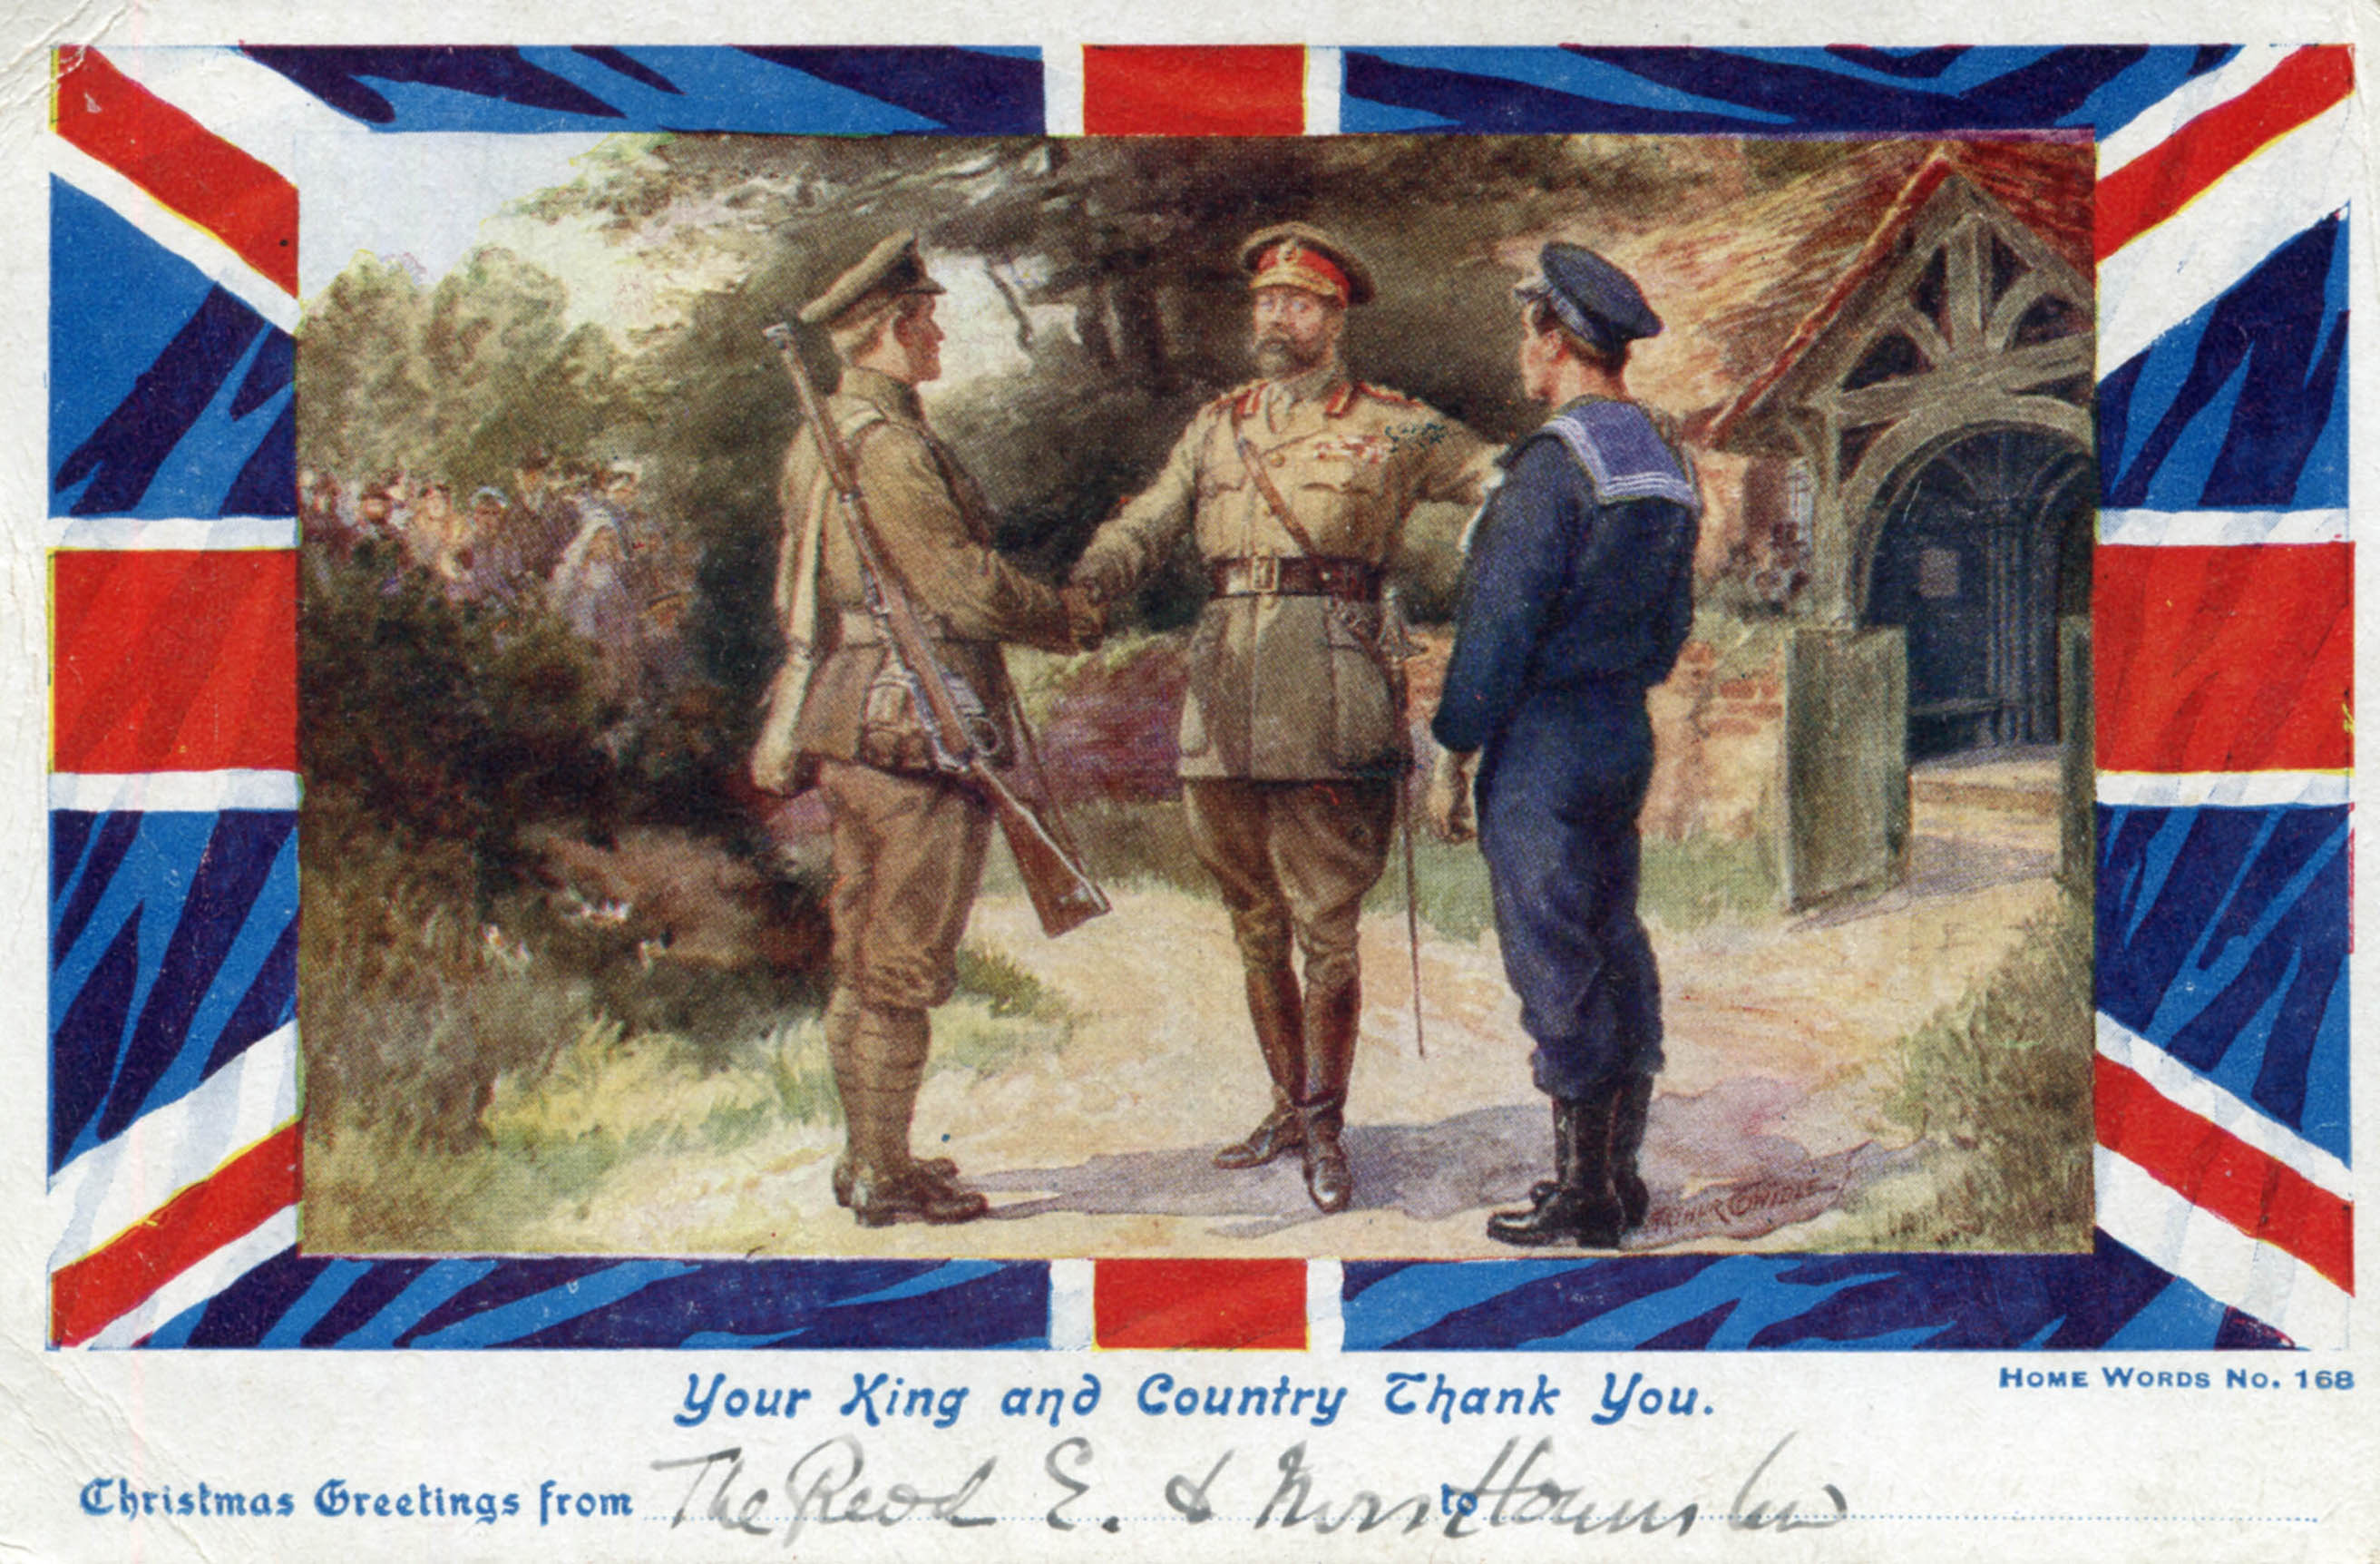 Your King and Country Thank You Card.jpg